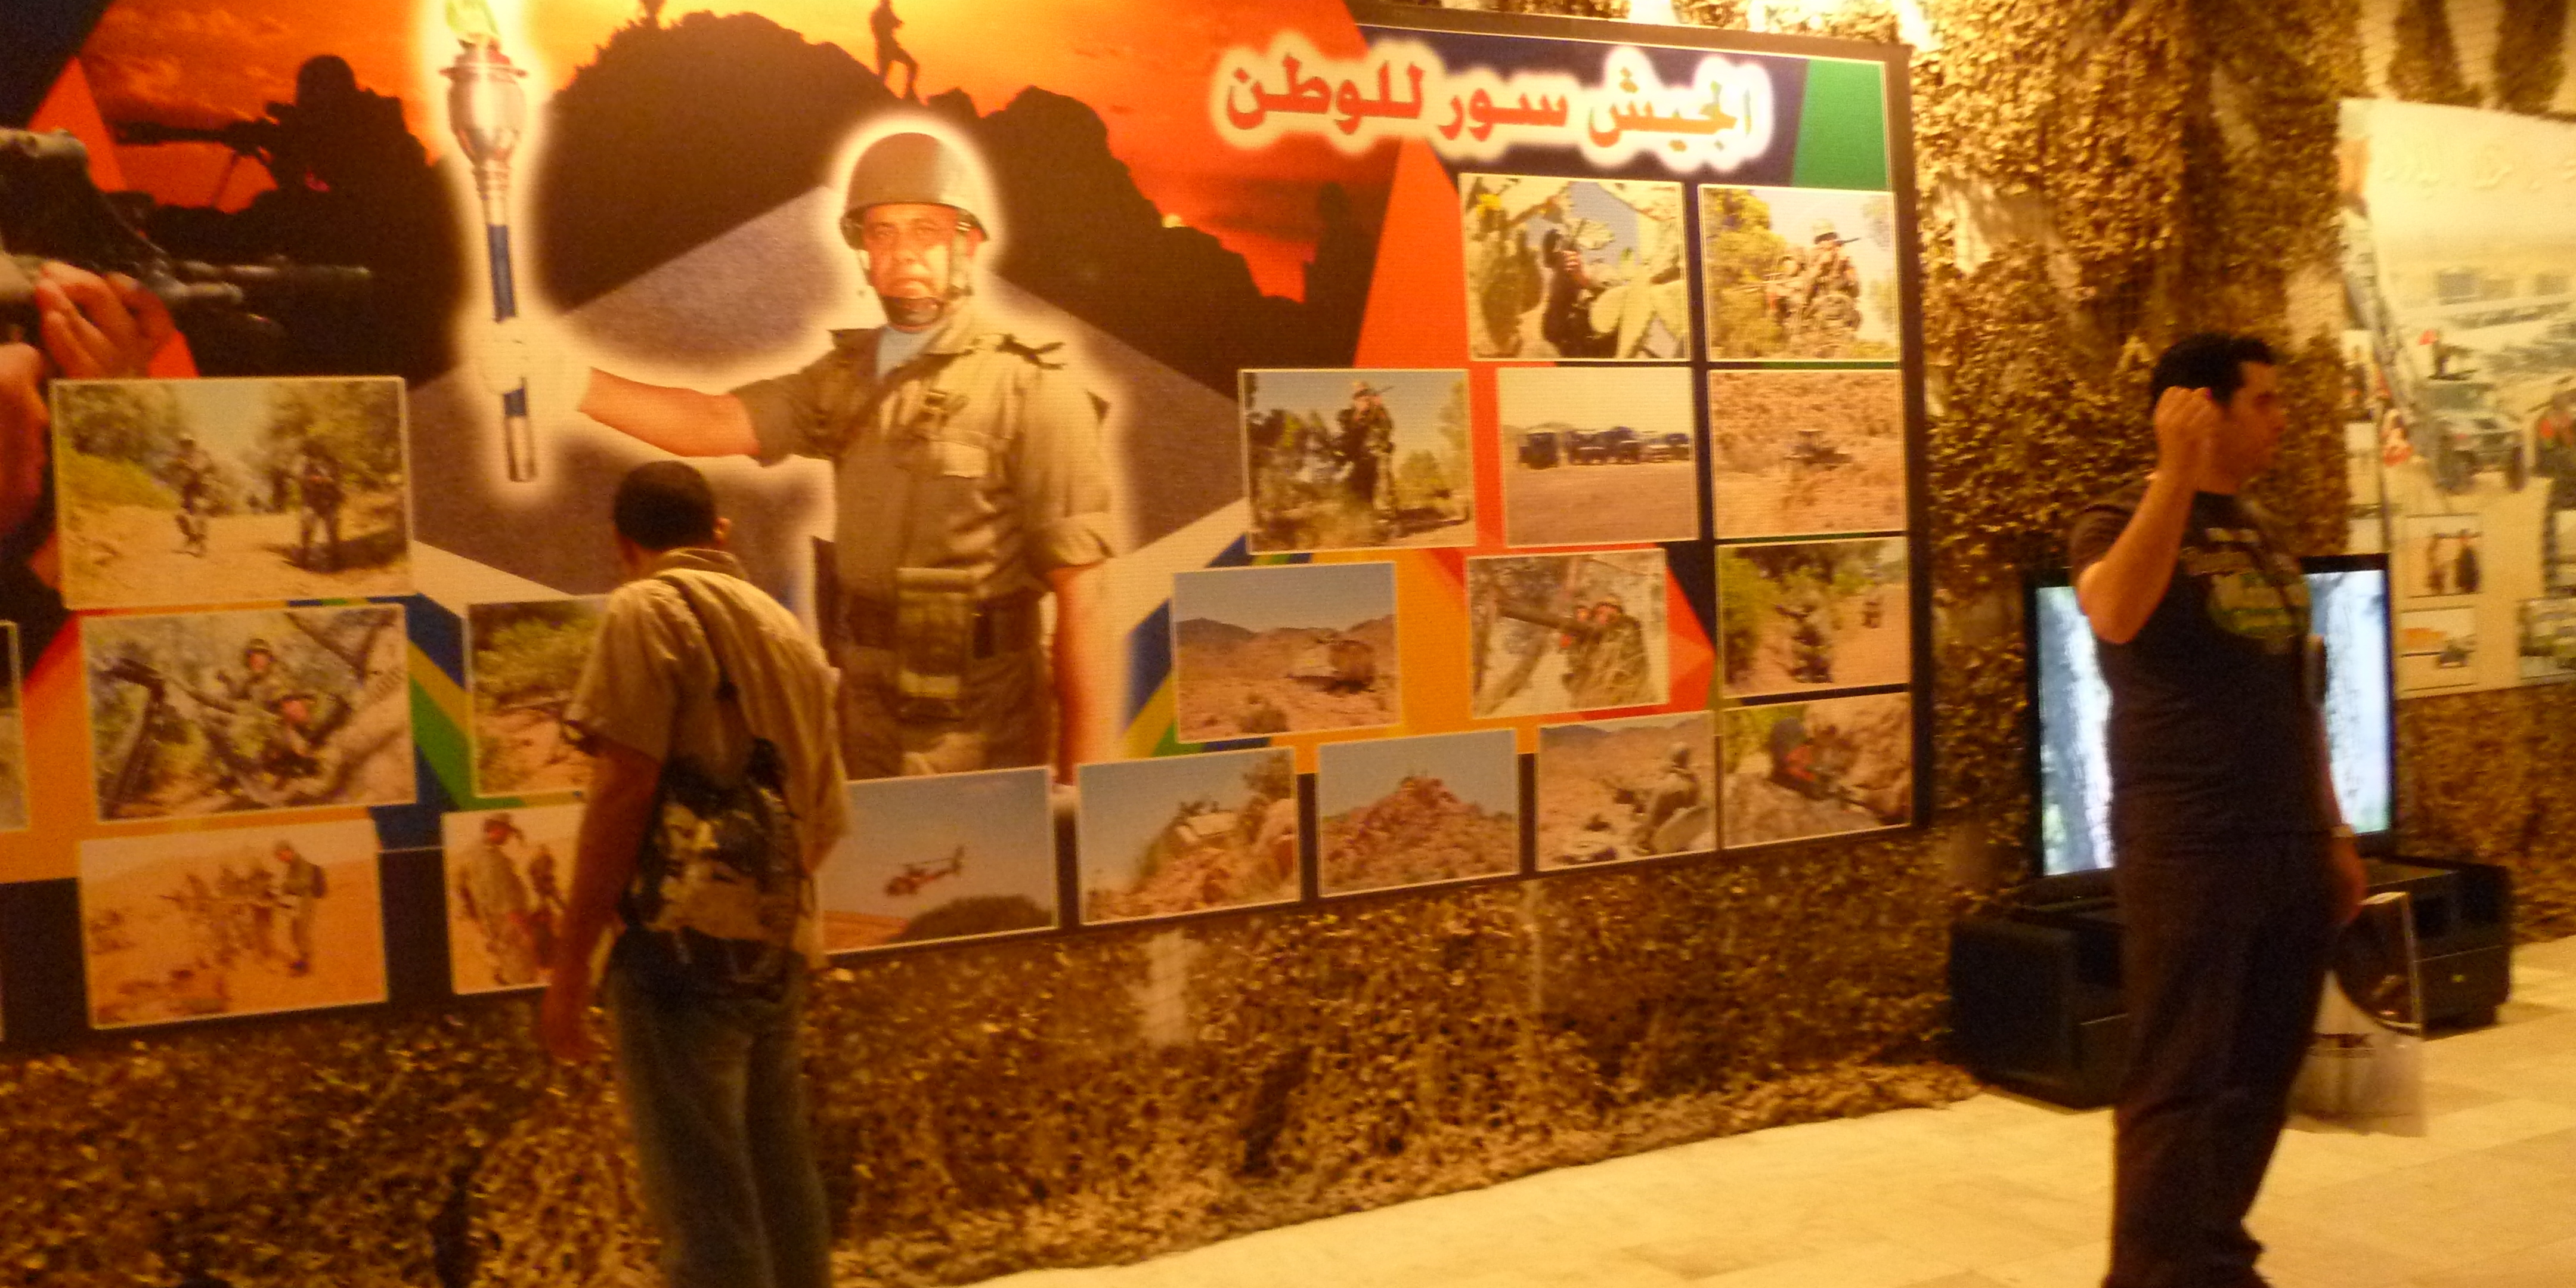 Exposition in Tunis in honor of National Army Day, June 25, 2013. Photo credit: Emily Parker, Tunisia Live